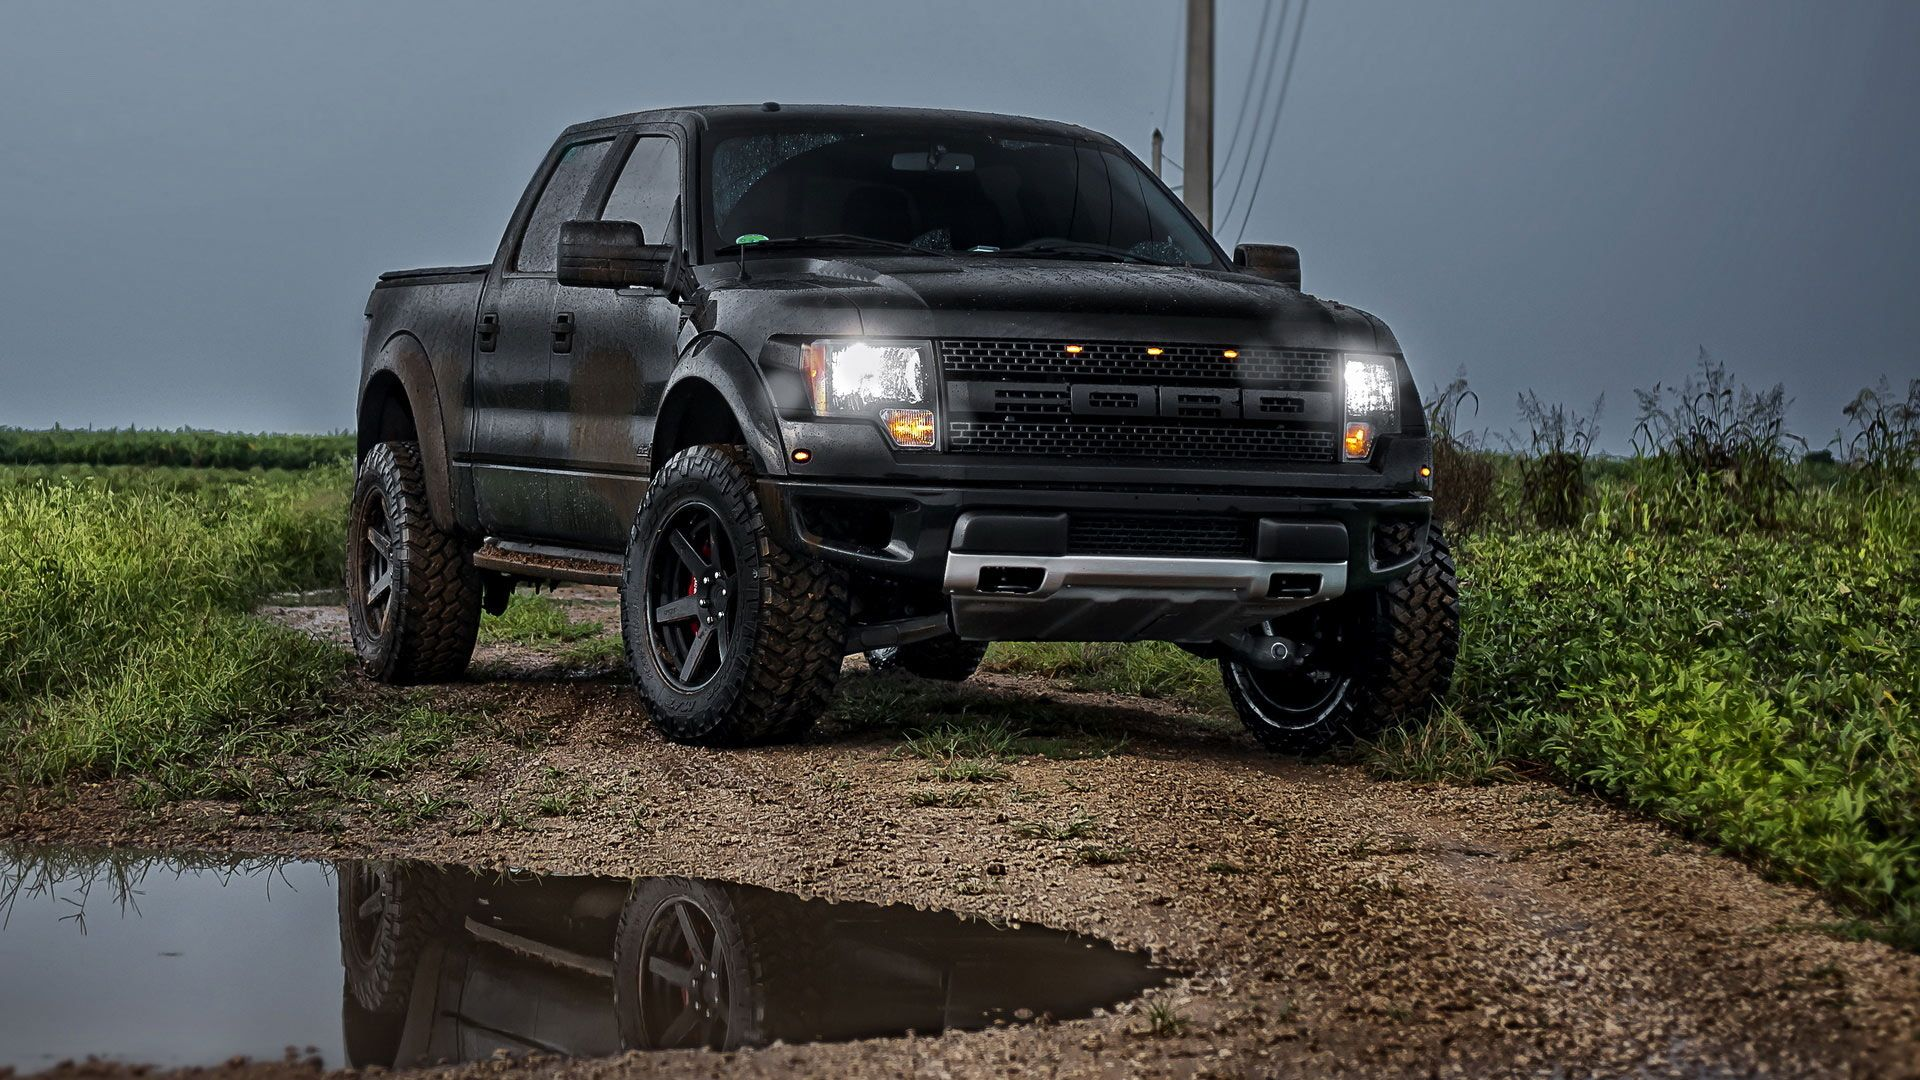 Black Ford Raptor 3 Widescreen Wallpaper - Hdblackwallpaper.com